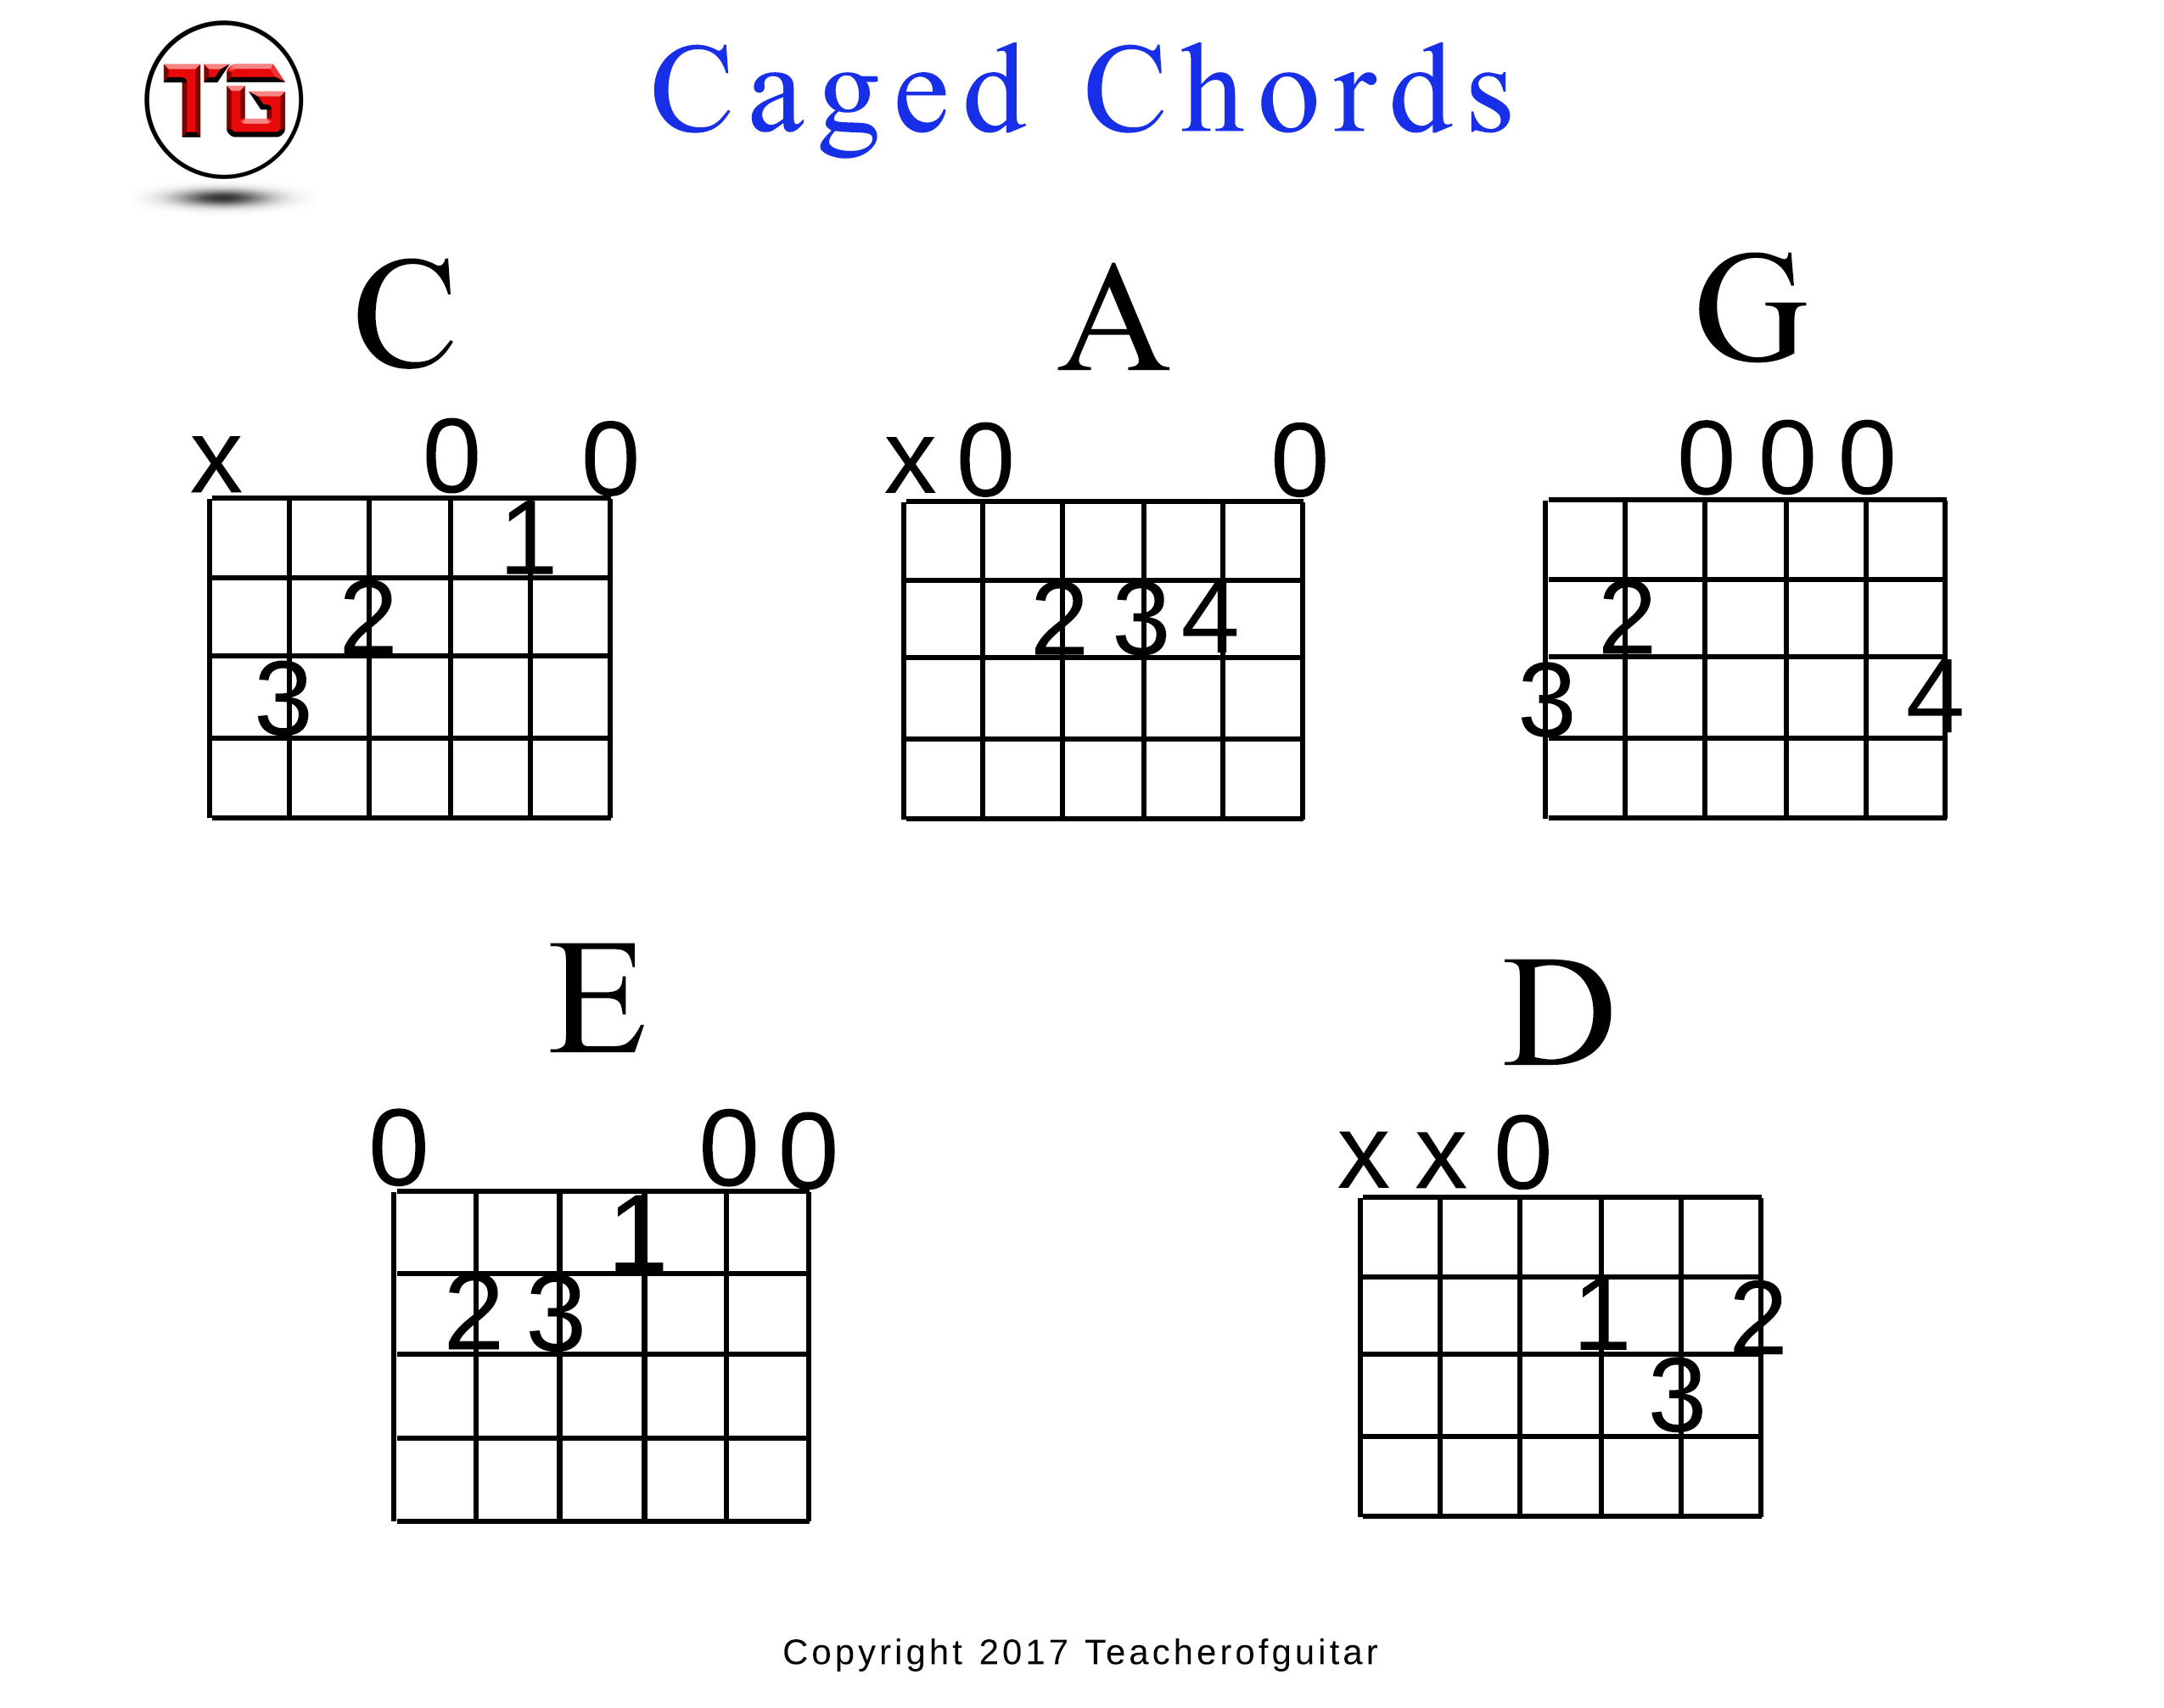 Caged Chords Chart Teacher Of Guitar